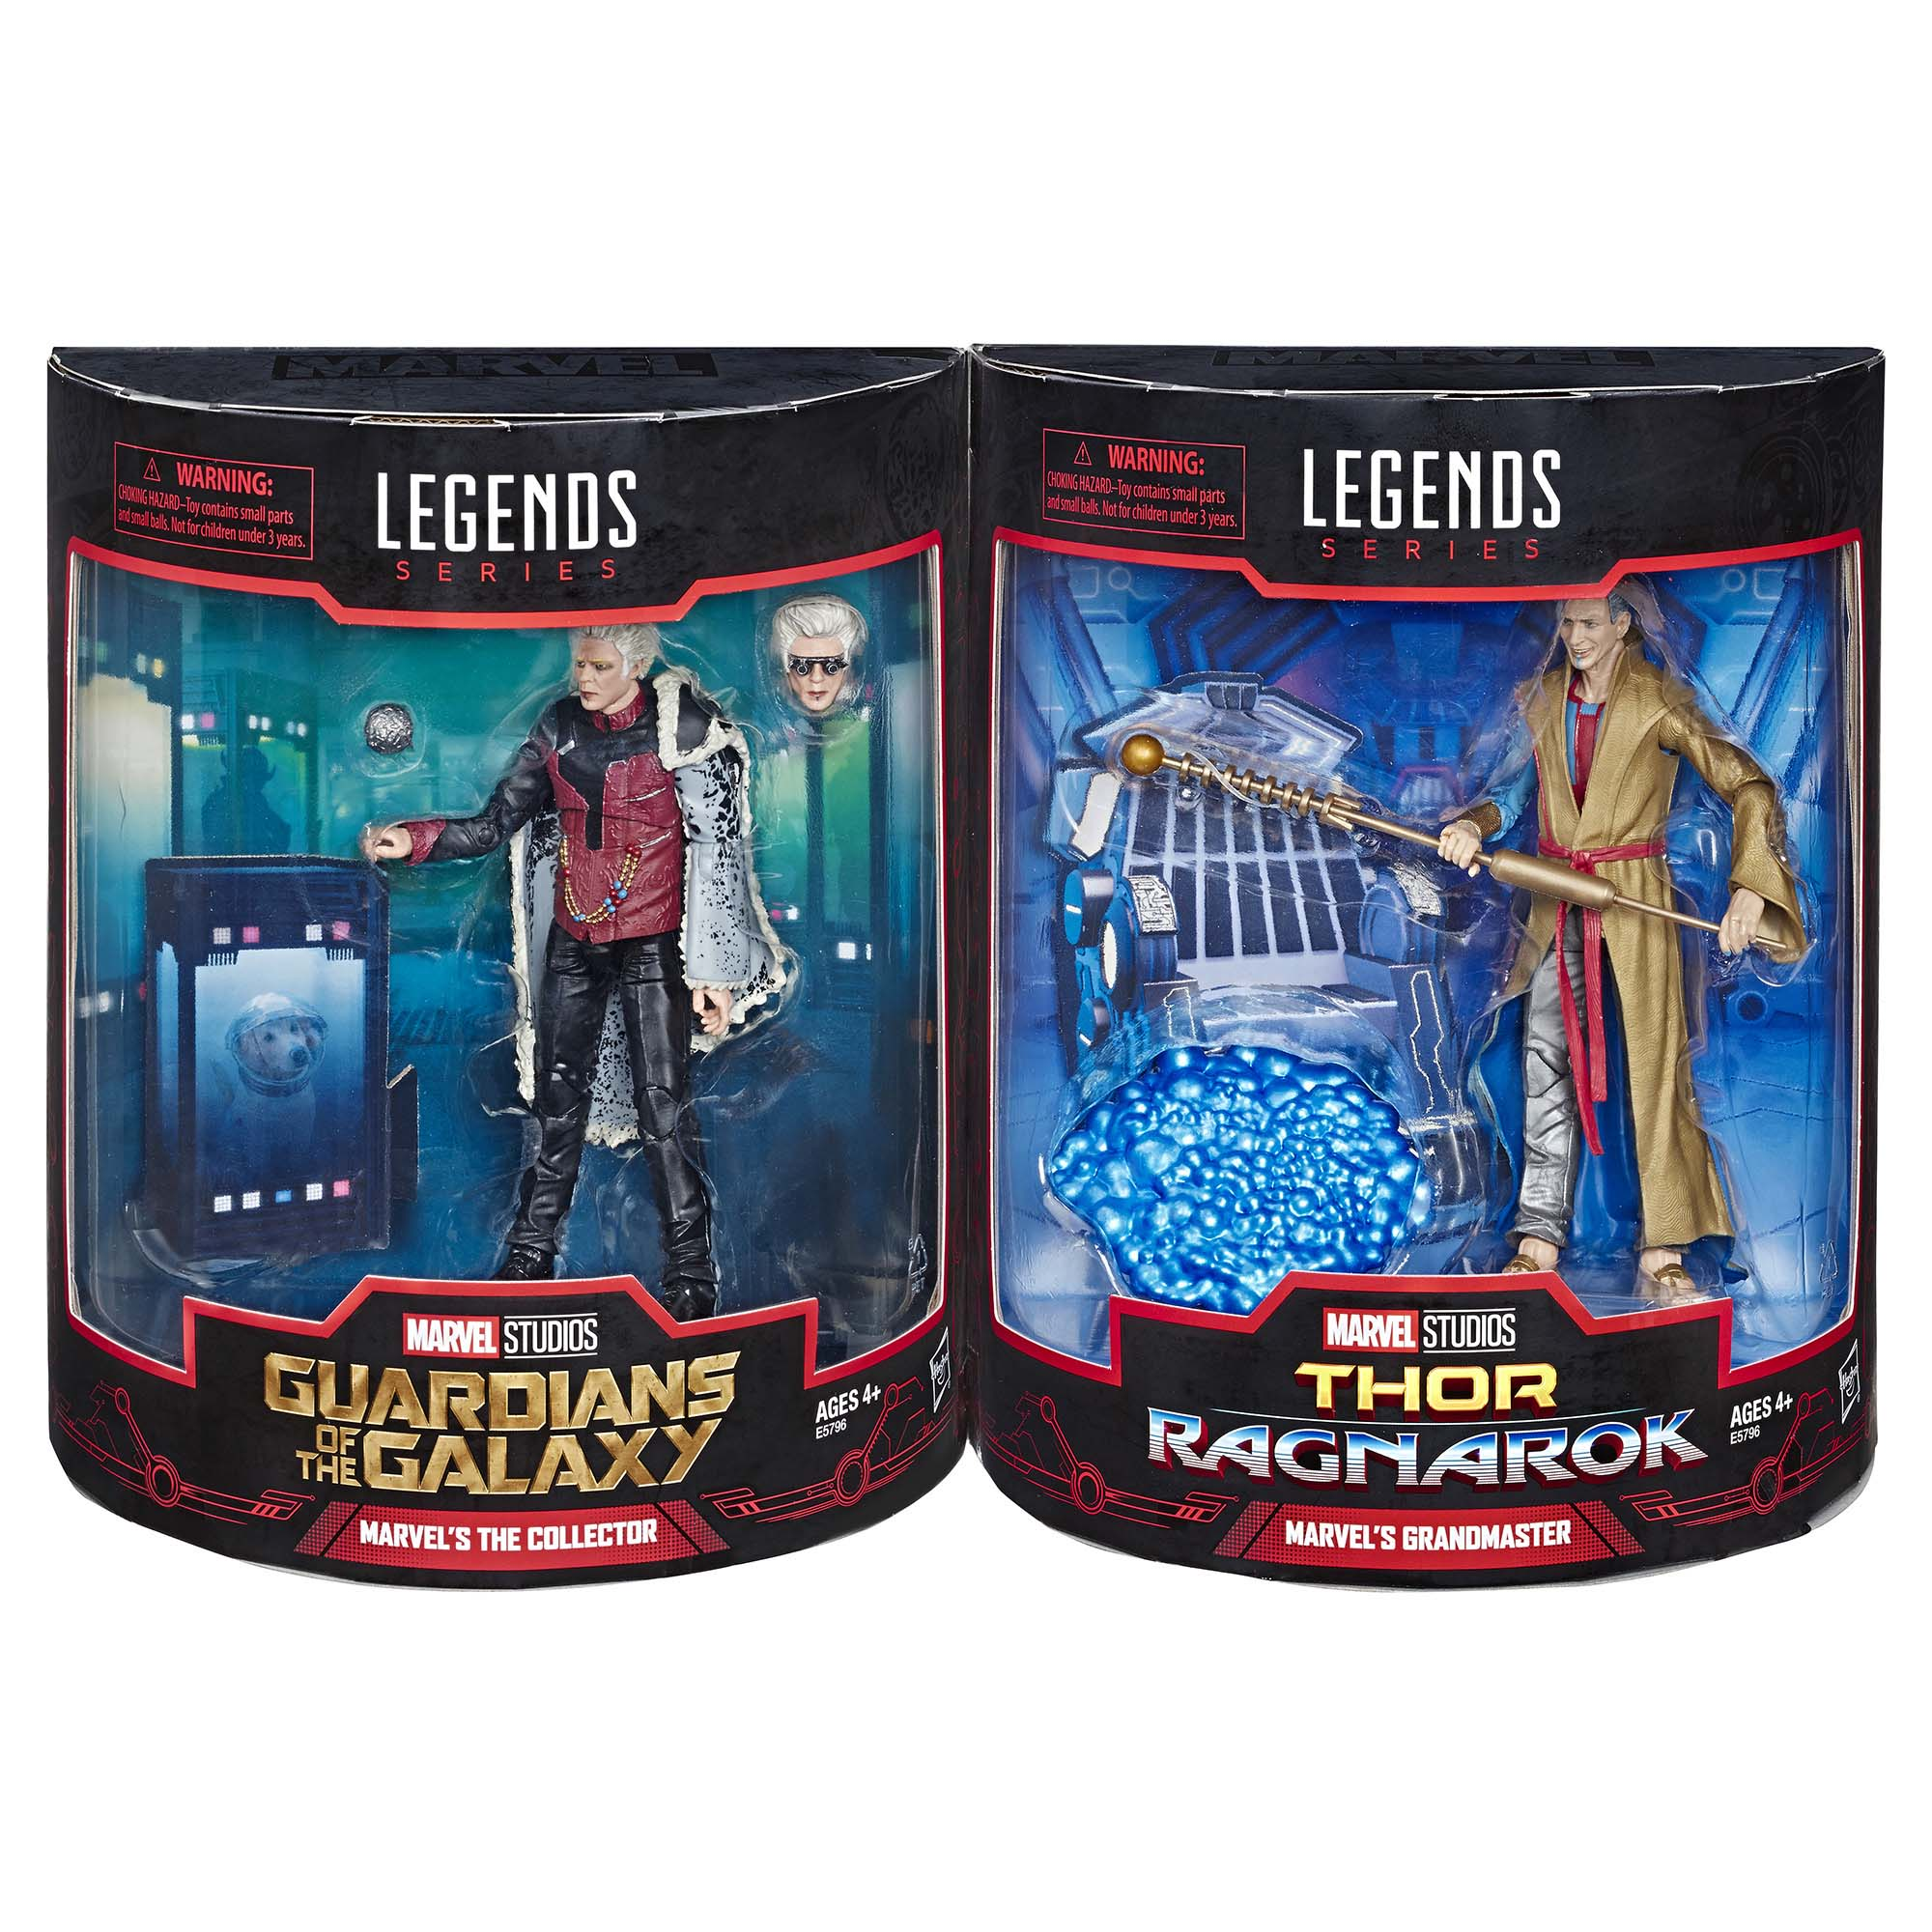 Marvel Legends Series Marvel's The Collector and the Marvel's Grandmaster 2-Pack